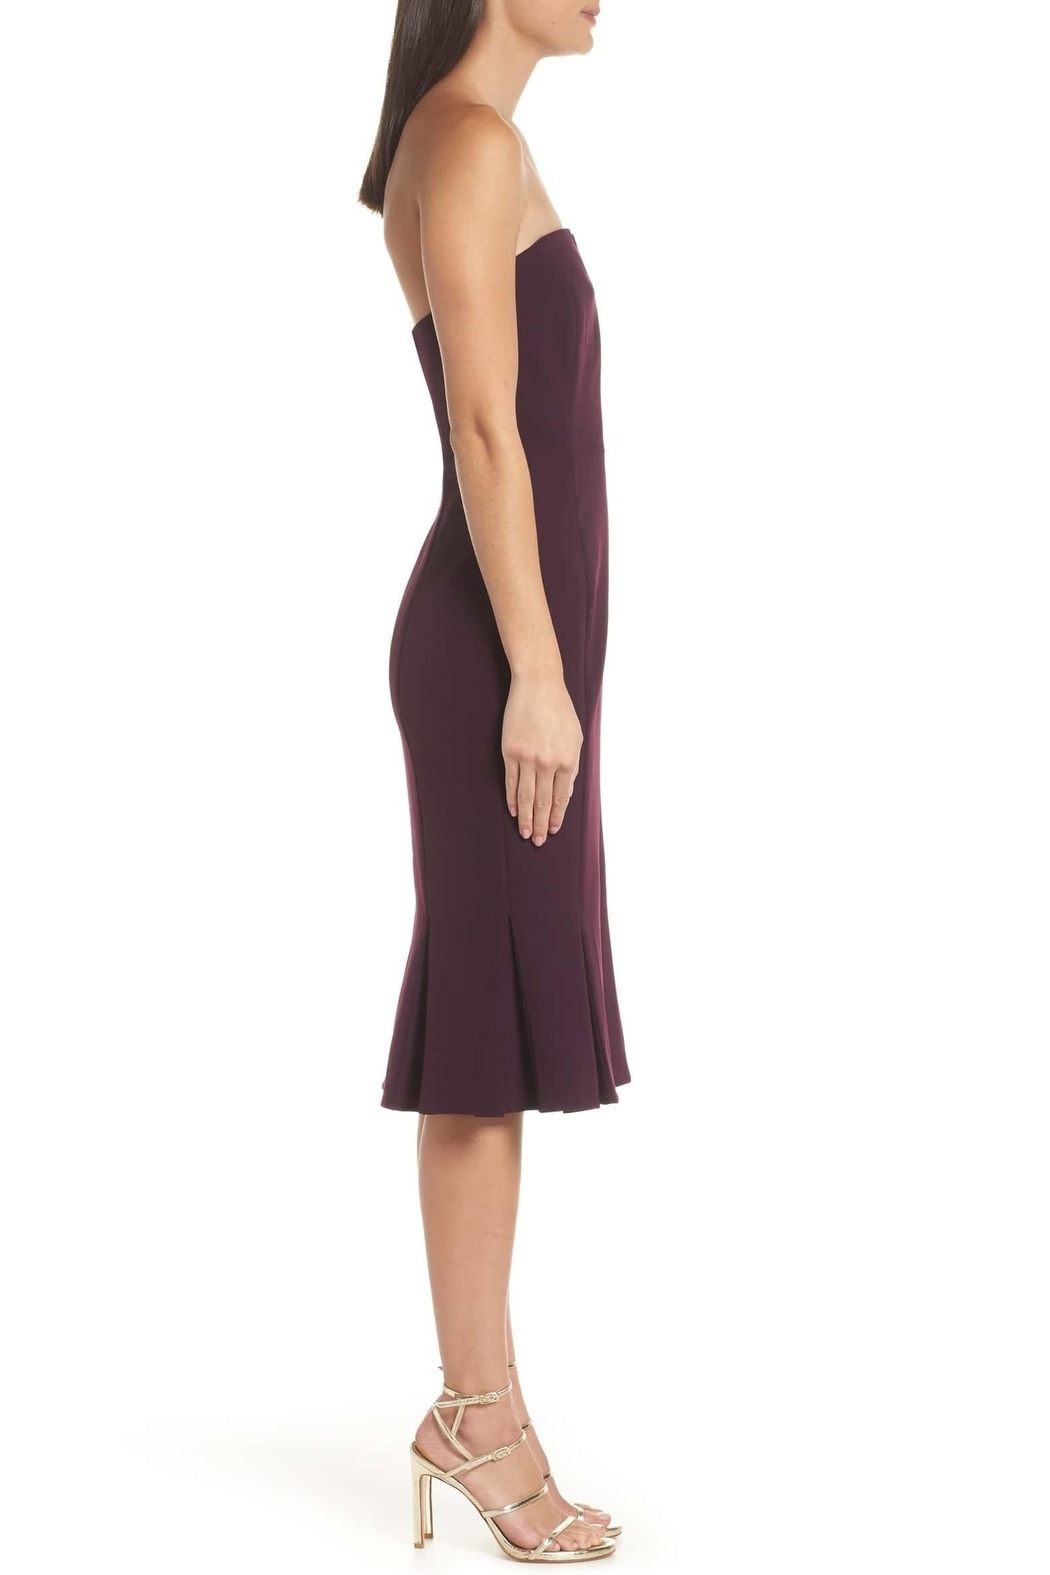 Adelyn Rae Alexis Woven Strapless Dress - Side Cropped Image